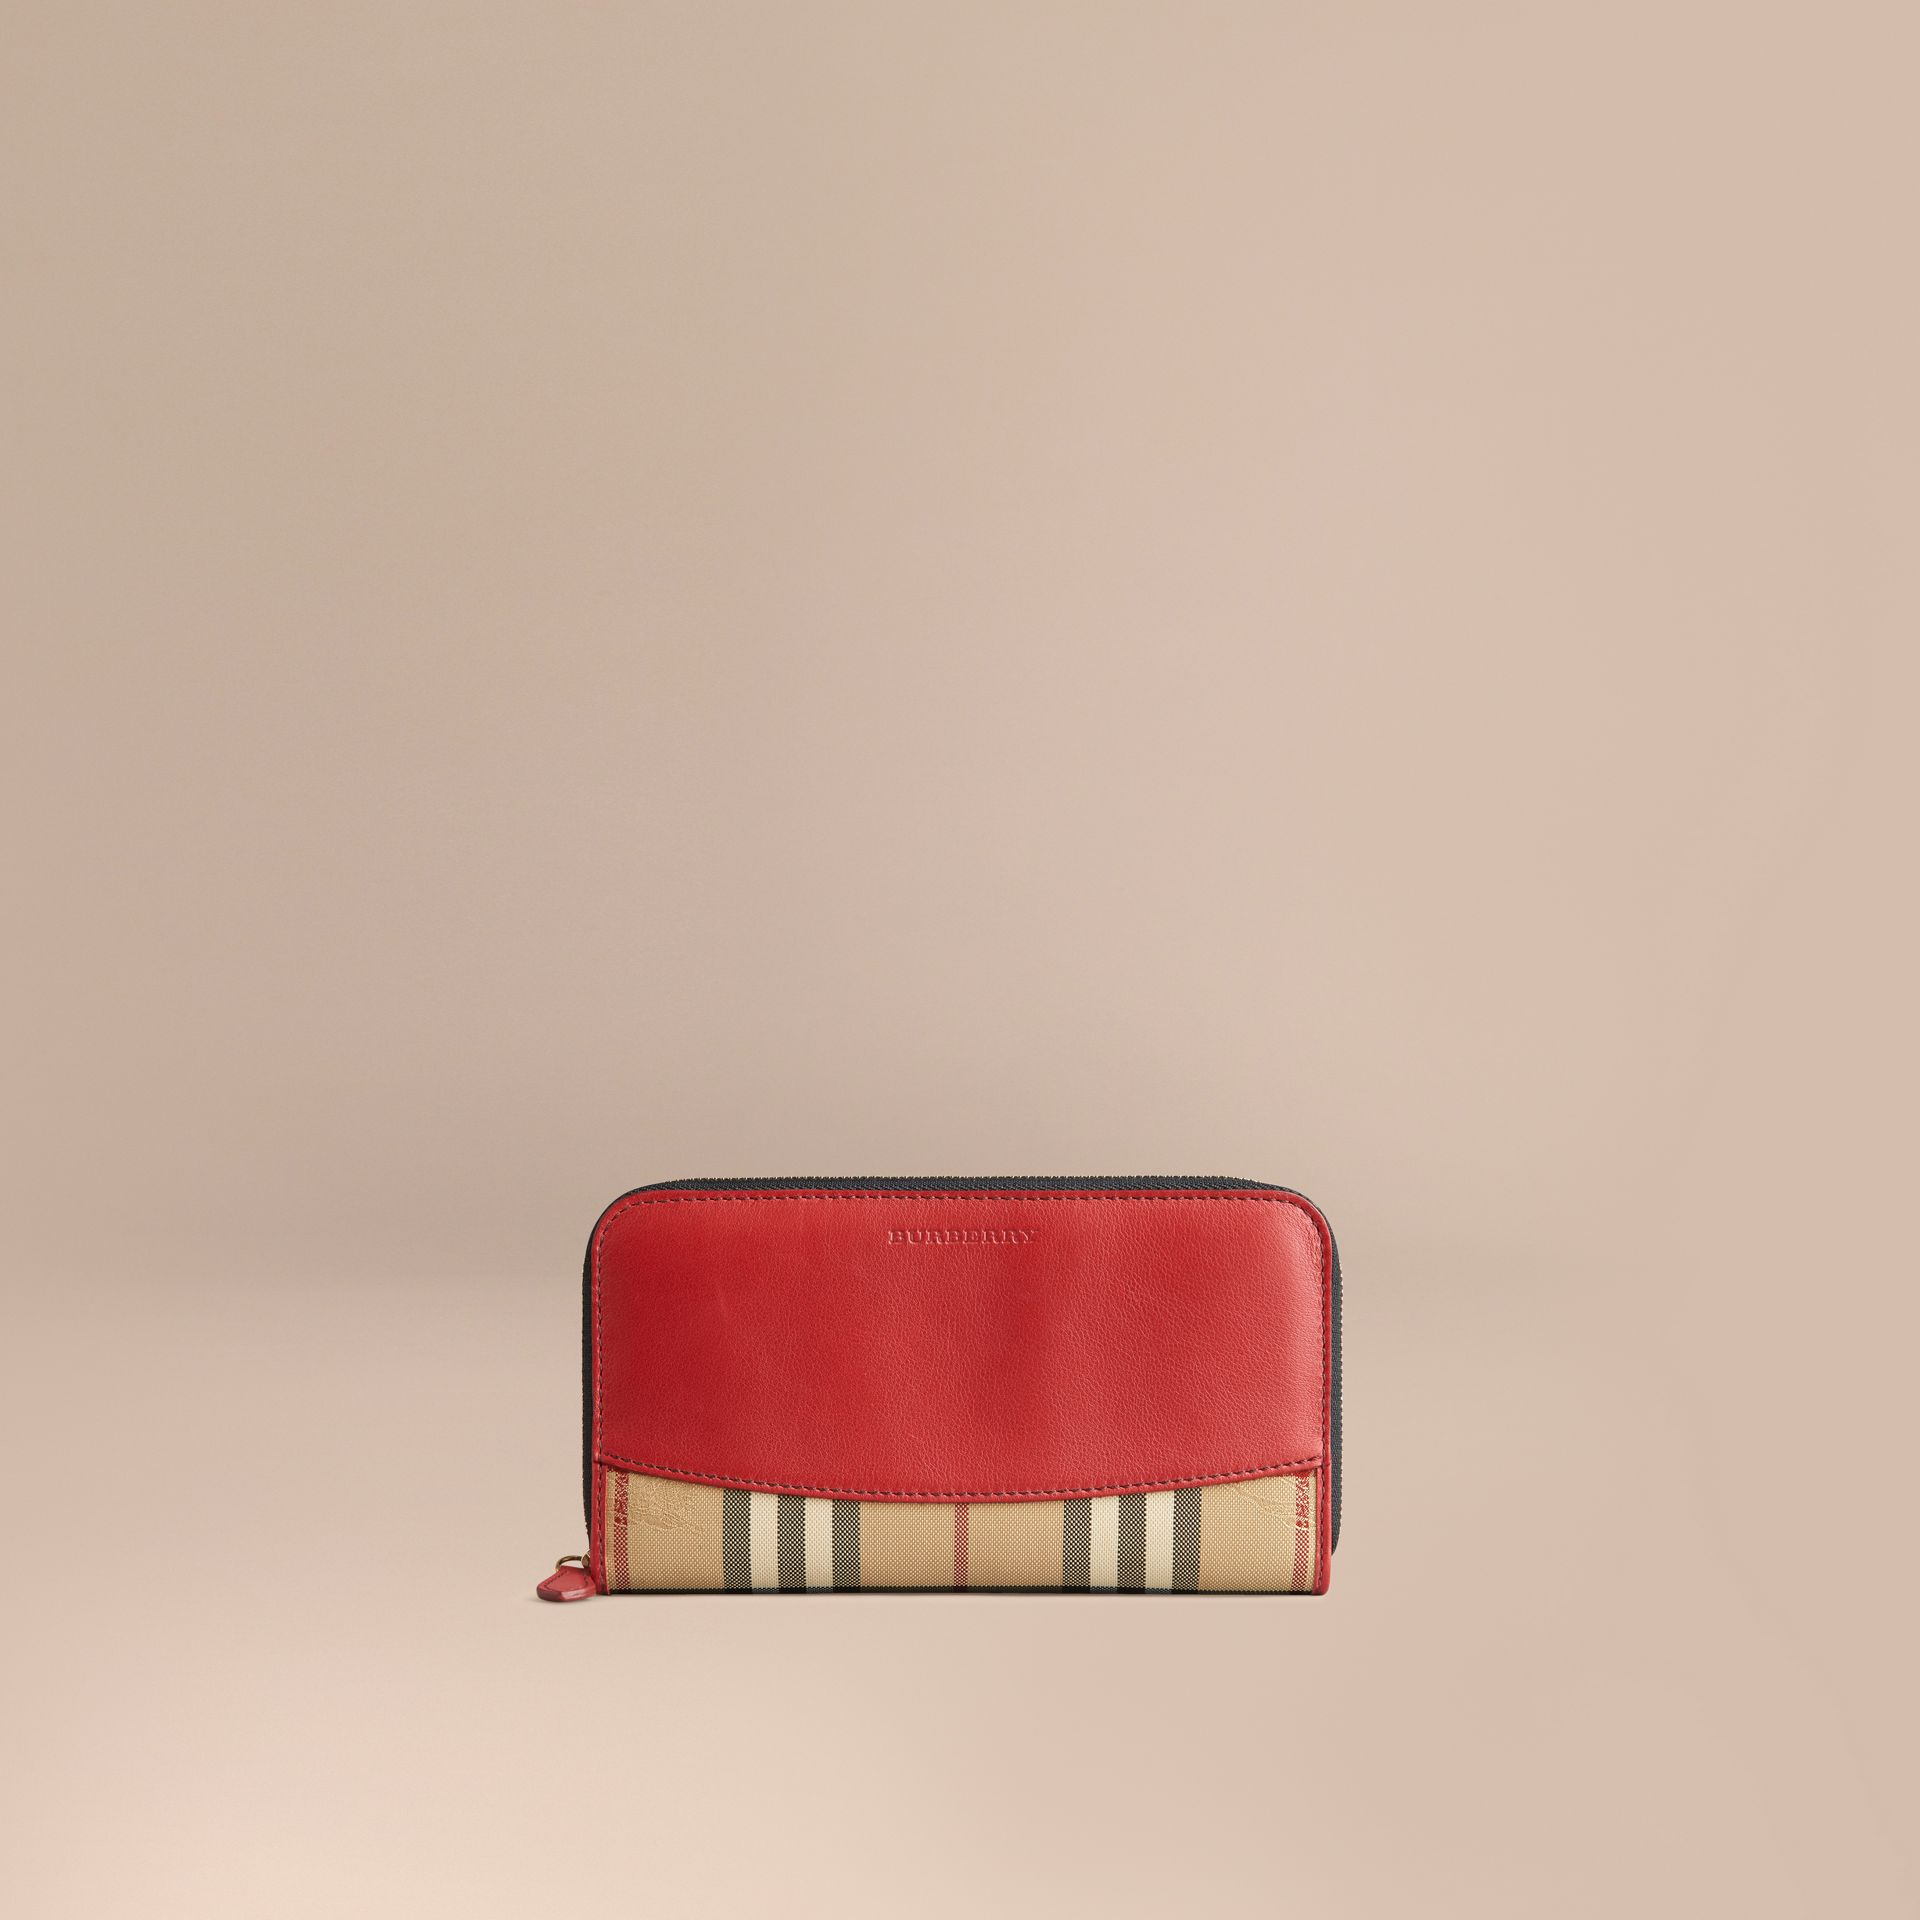 Horseferry Check and Leather Ziparound Wallet in Parade Red - Women | Burberry United Kingdom - gallery image 1